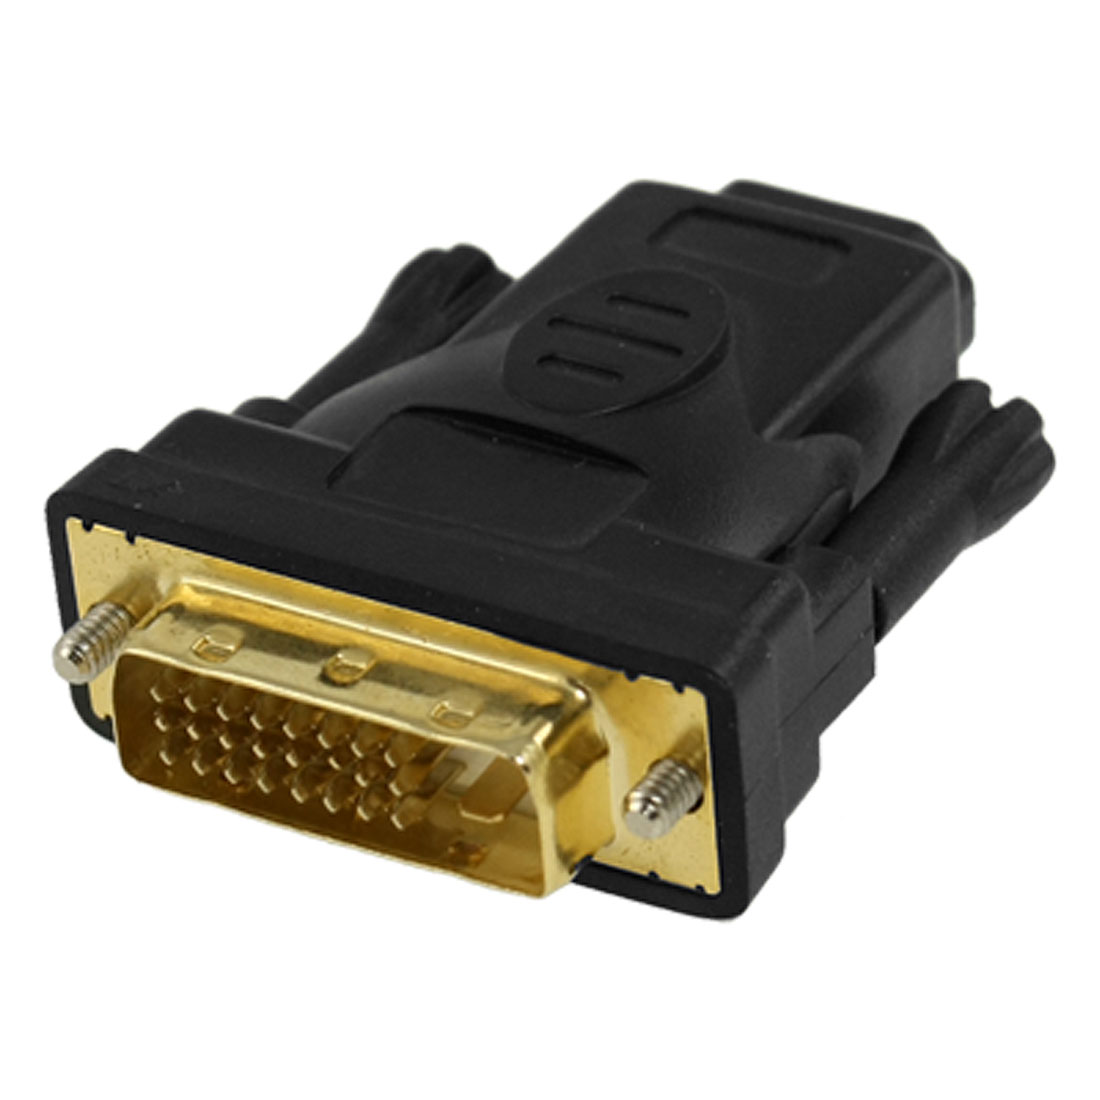 DVI-D Dual Link Male to HDMI Female Video Adapter Connector